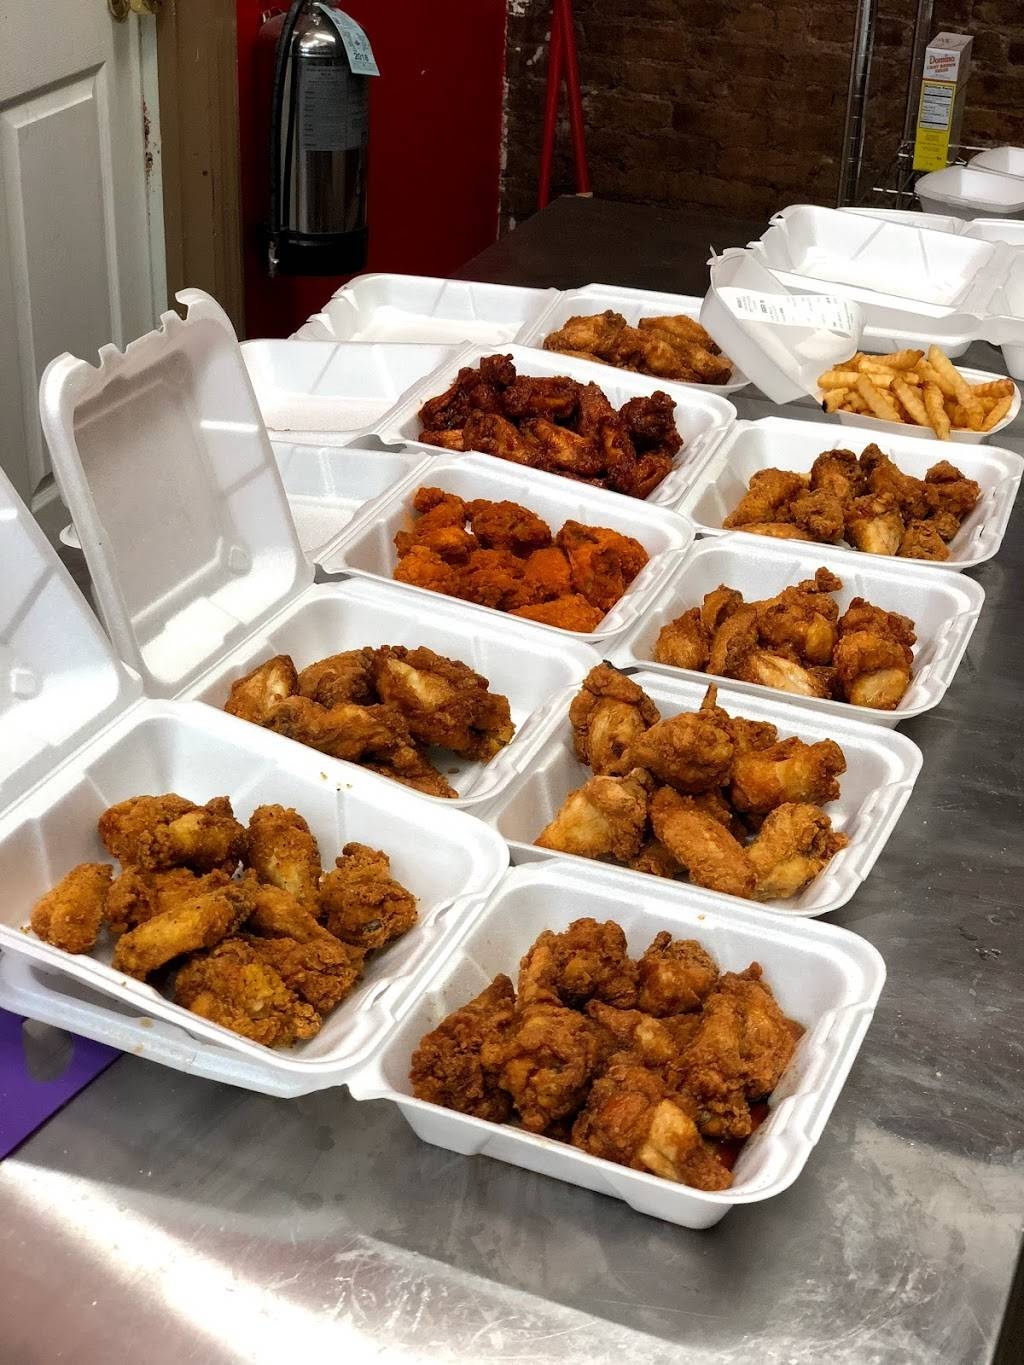 Wingin It | restaurant | 122 Ocean Ave, Jersey City, NJ 07305, USA | 2016304367 OR +1 201-630-4367